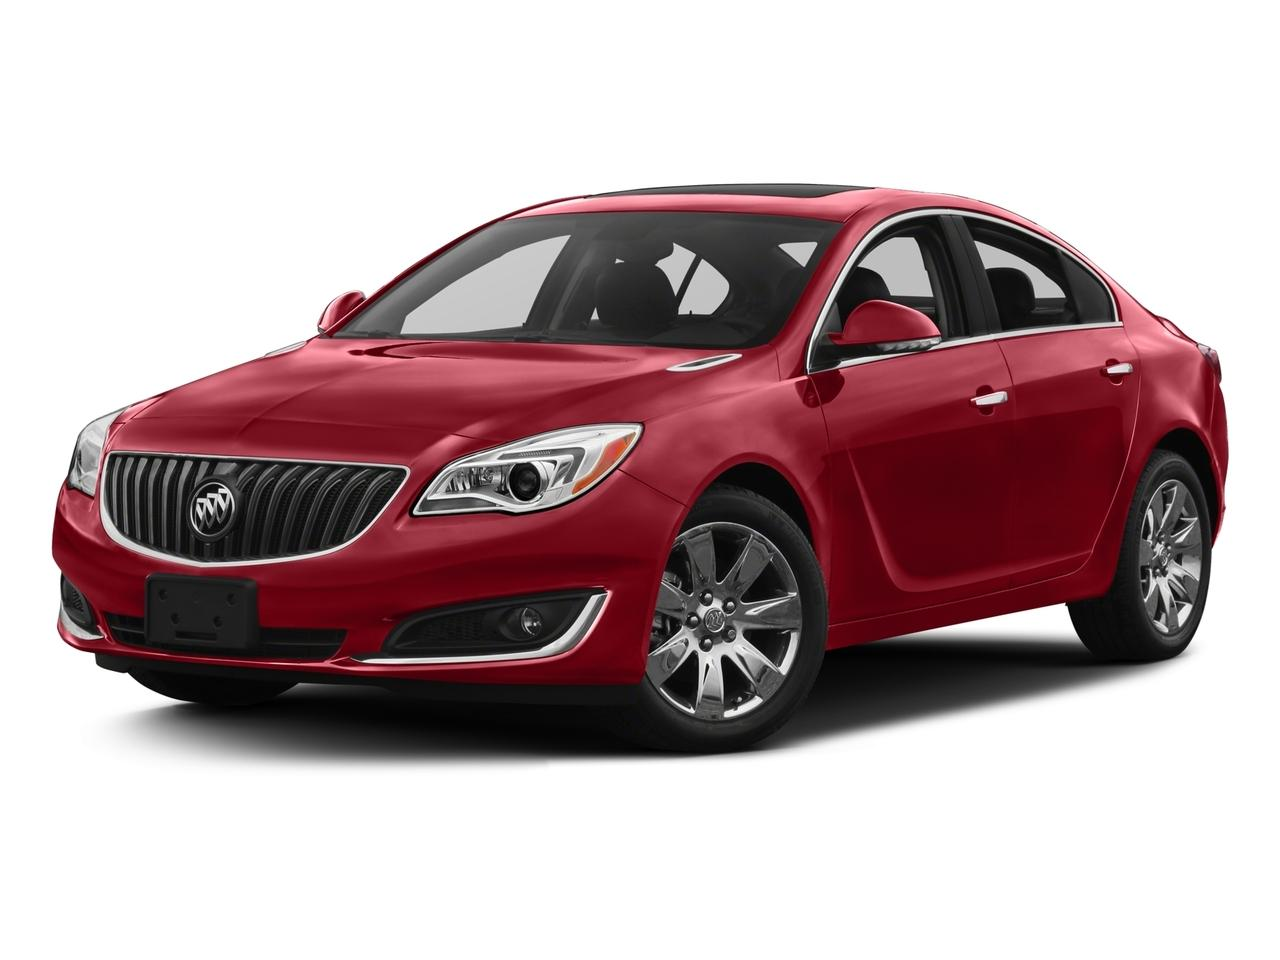 2017 Buick Regal Vehicle Photo in Nashua, NH 03060